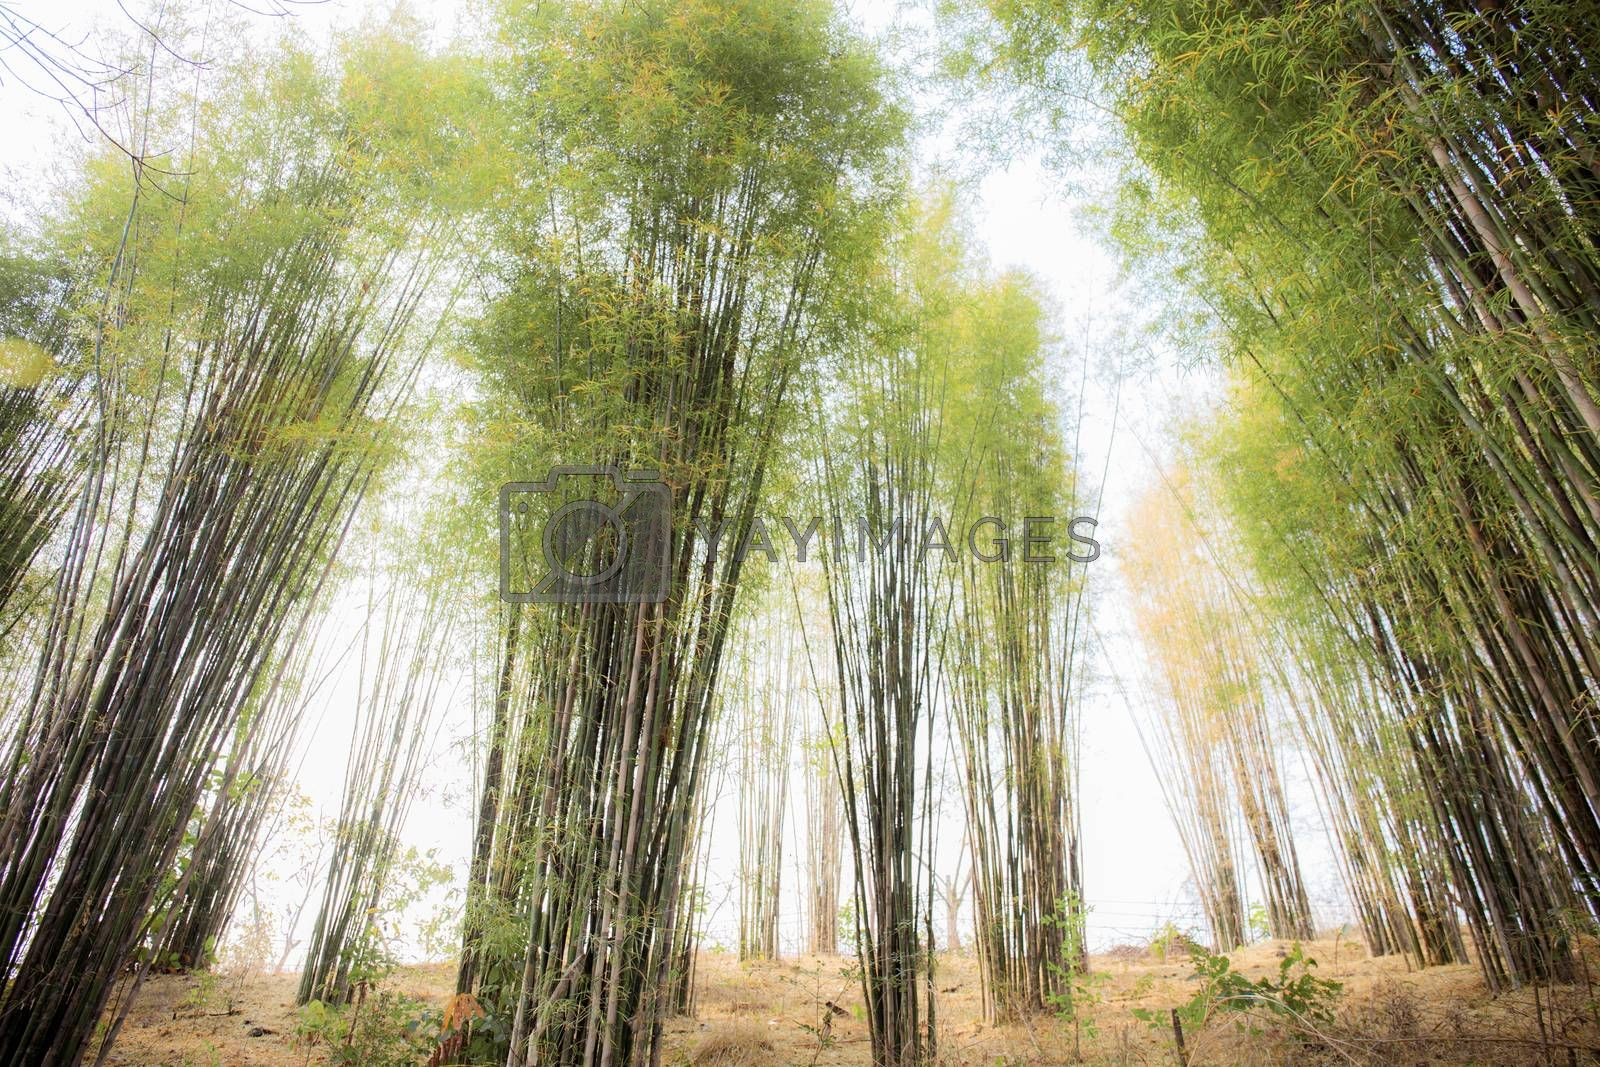 Bamboo tree in forest with the sunlight at sky.